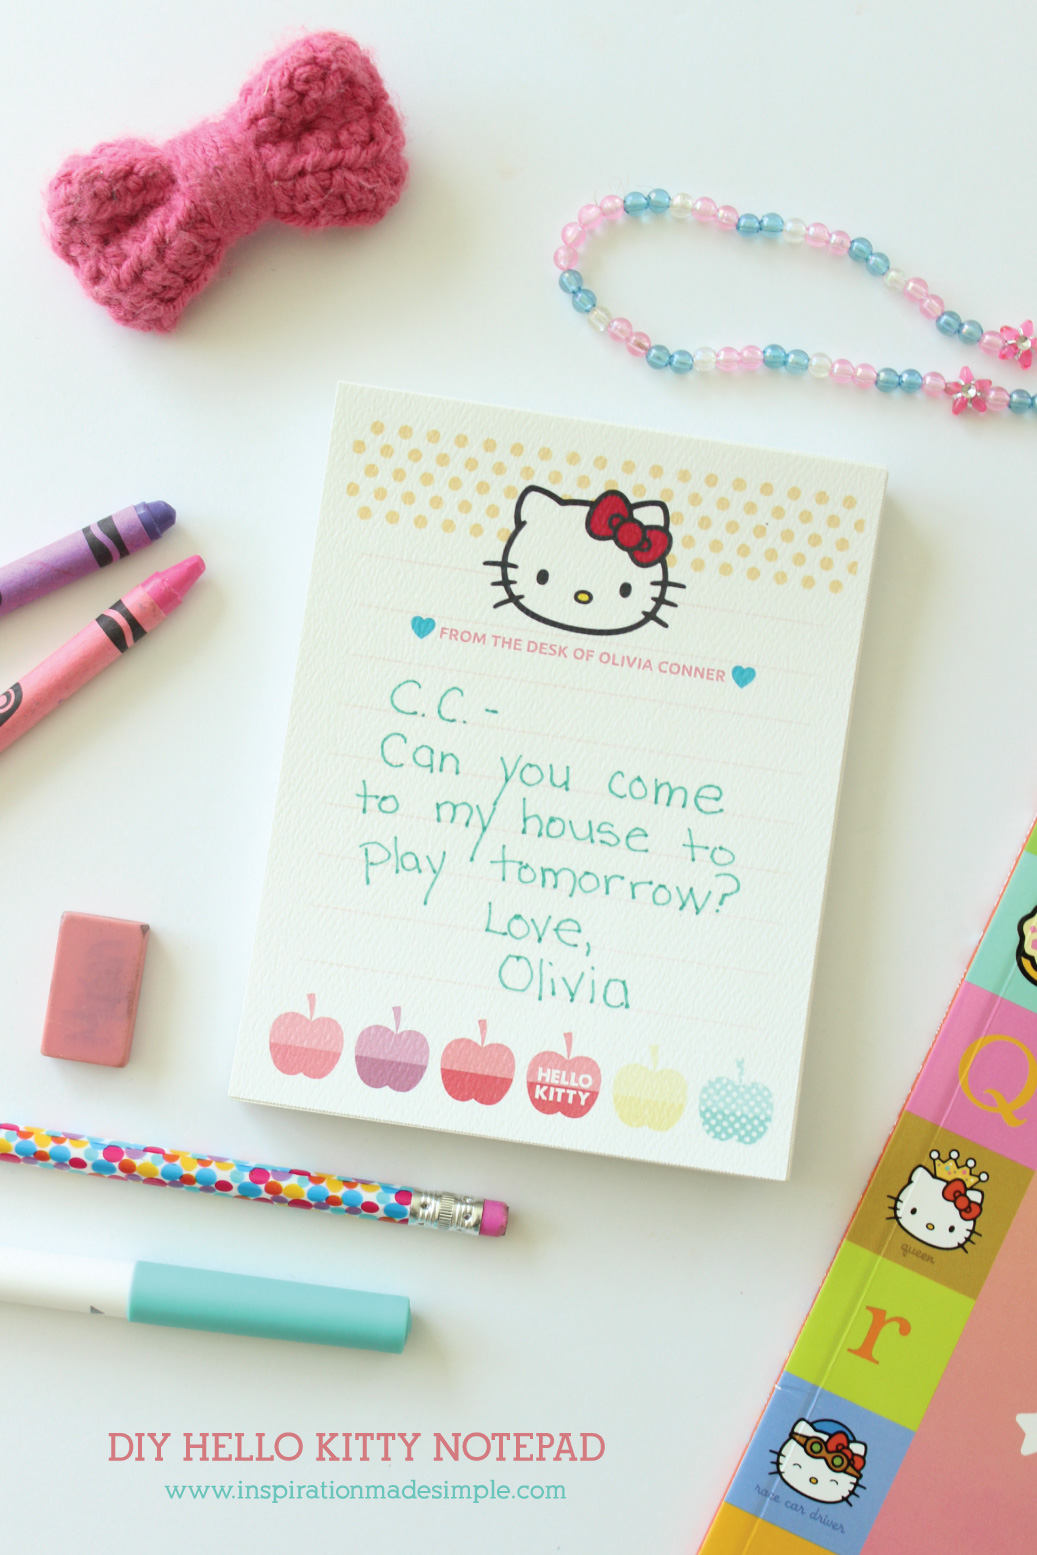 Printable DIY Hello Kitty Notepad